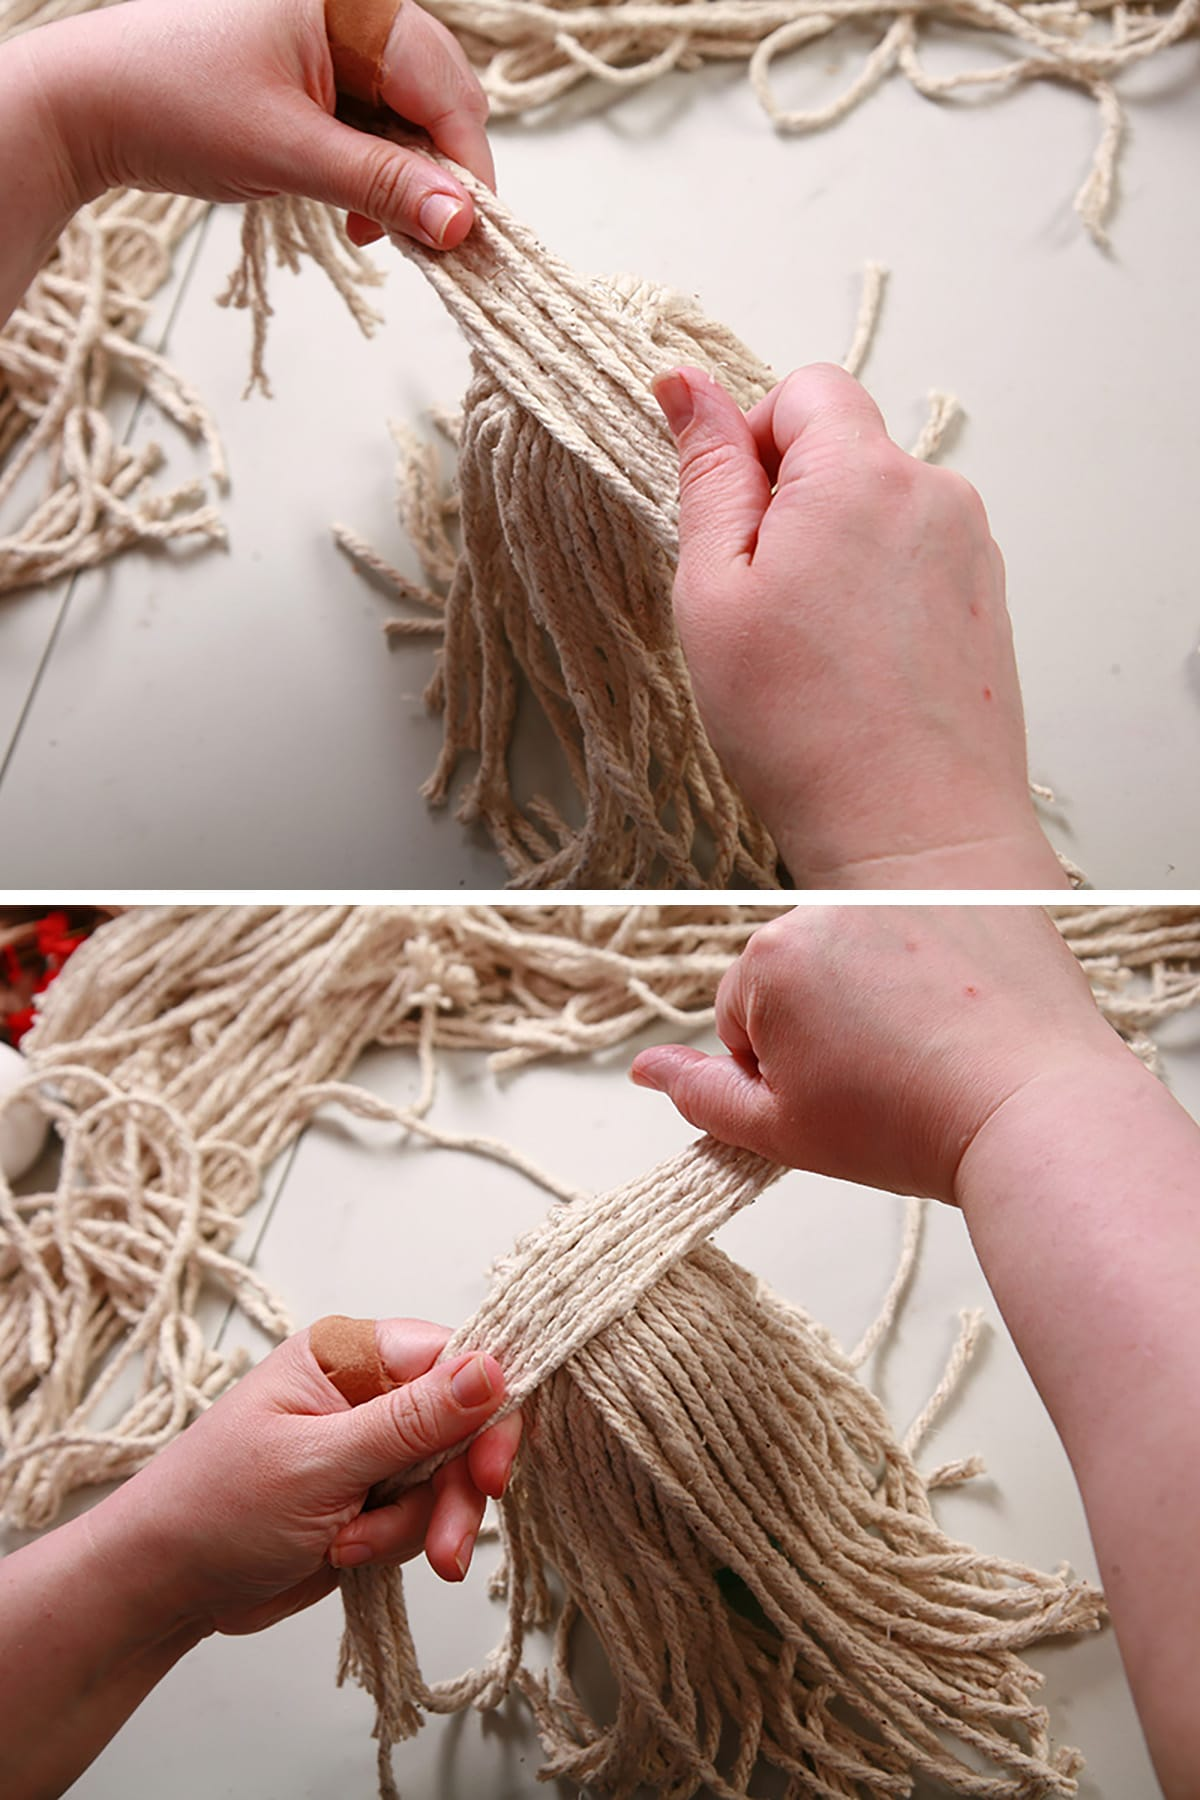 Strands of yarn being glued down to the top of the air freshener.